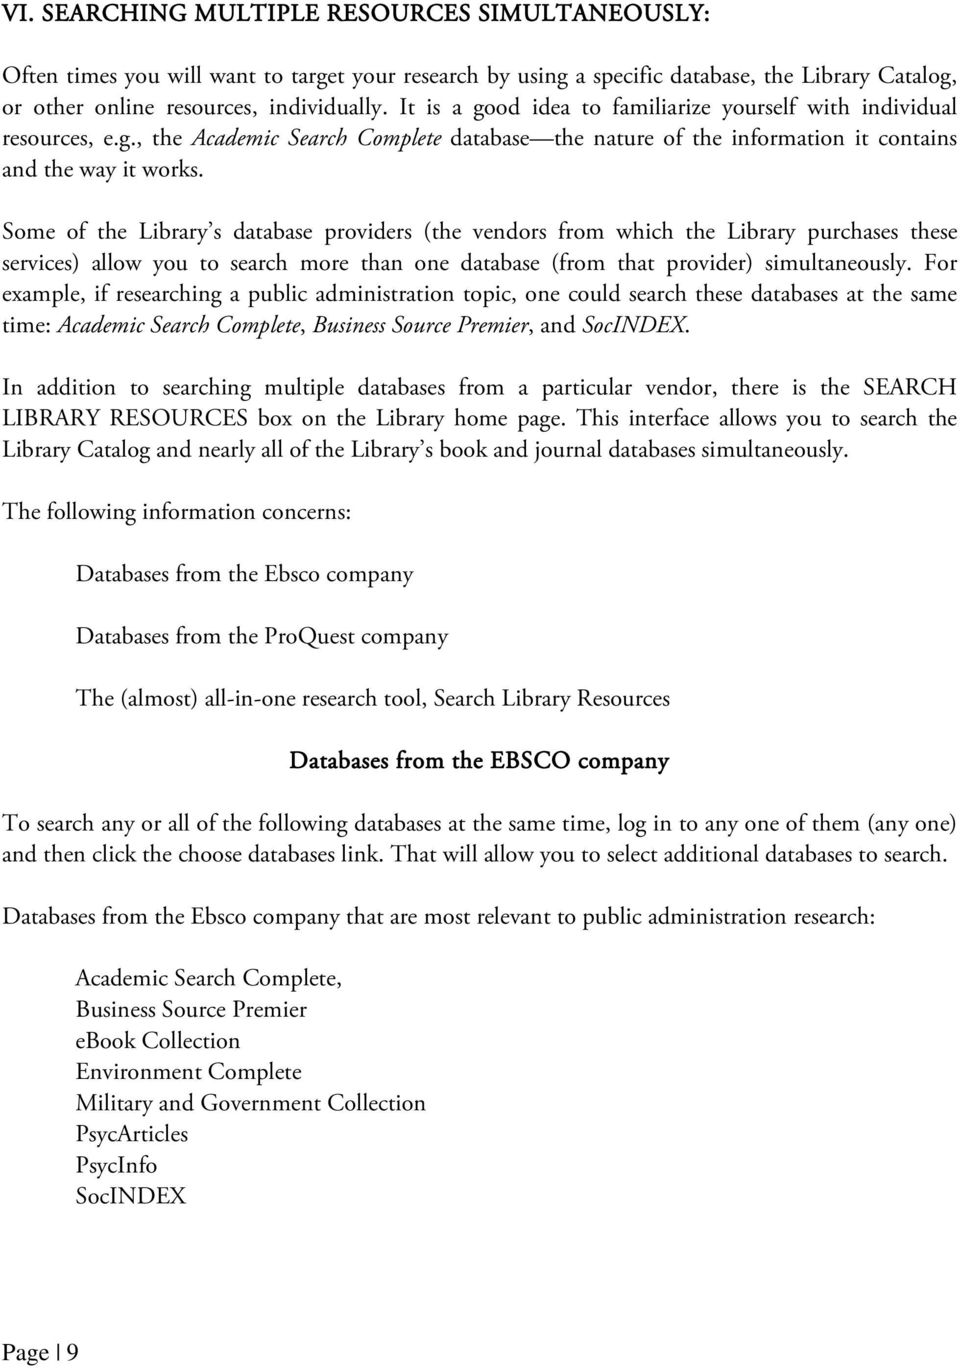 Some of the Library s database providers (the vendors from which the Library purchases these services) allow you to search more than one database (from that provider) simultaneously.